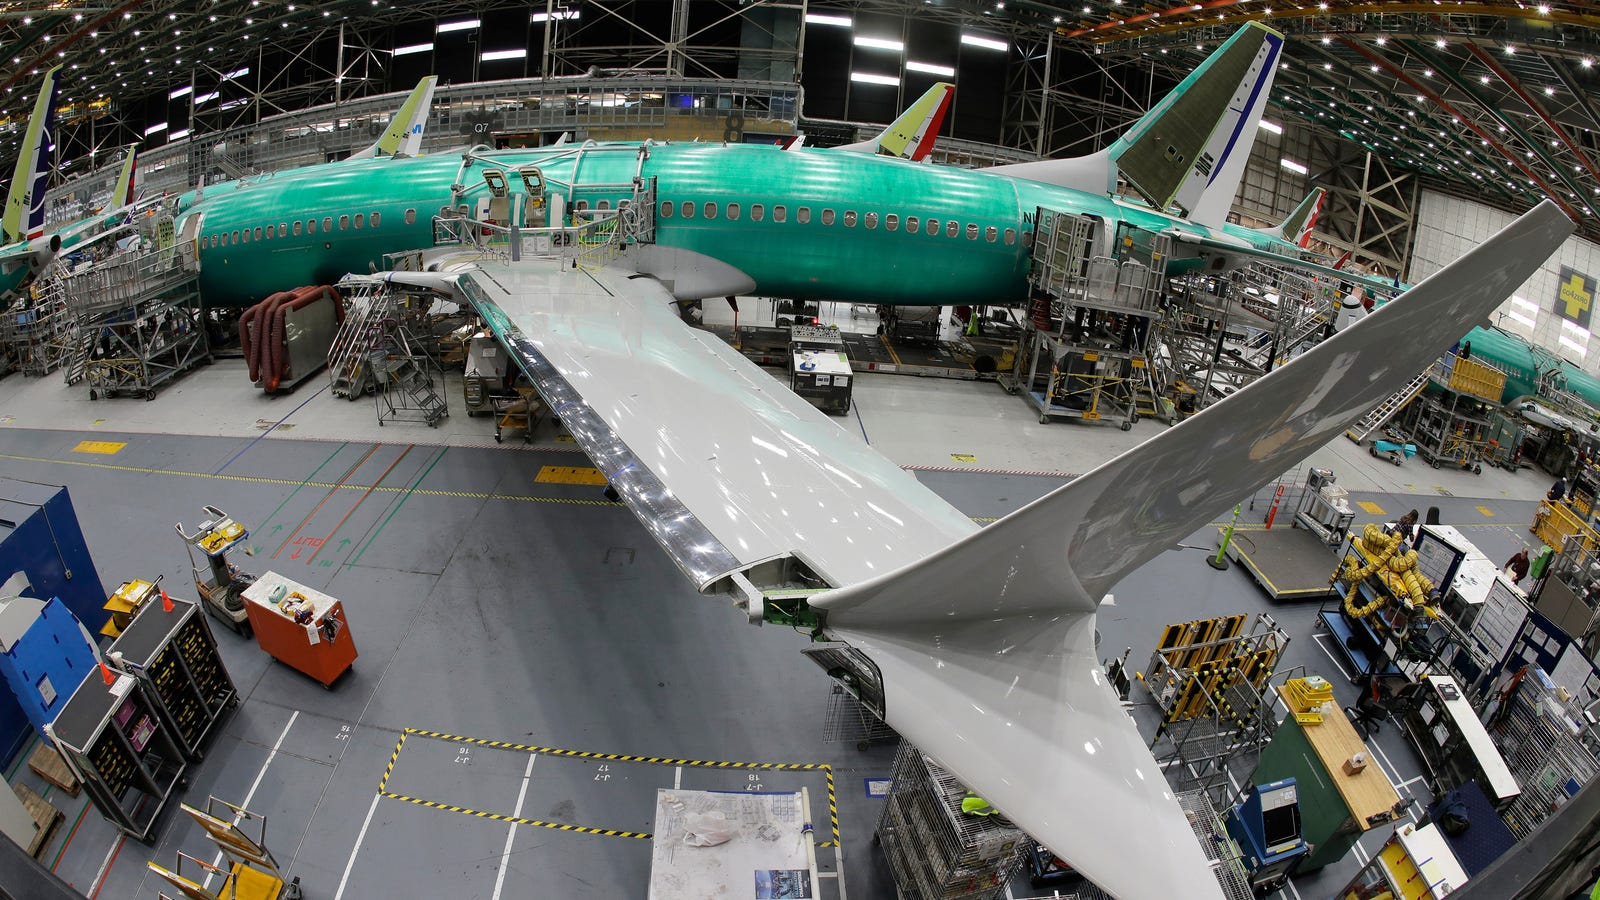 FAA Reportedly Delegated Oversight of Critical 737 Max Flight System to Boeing